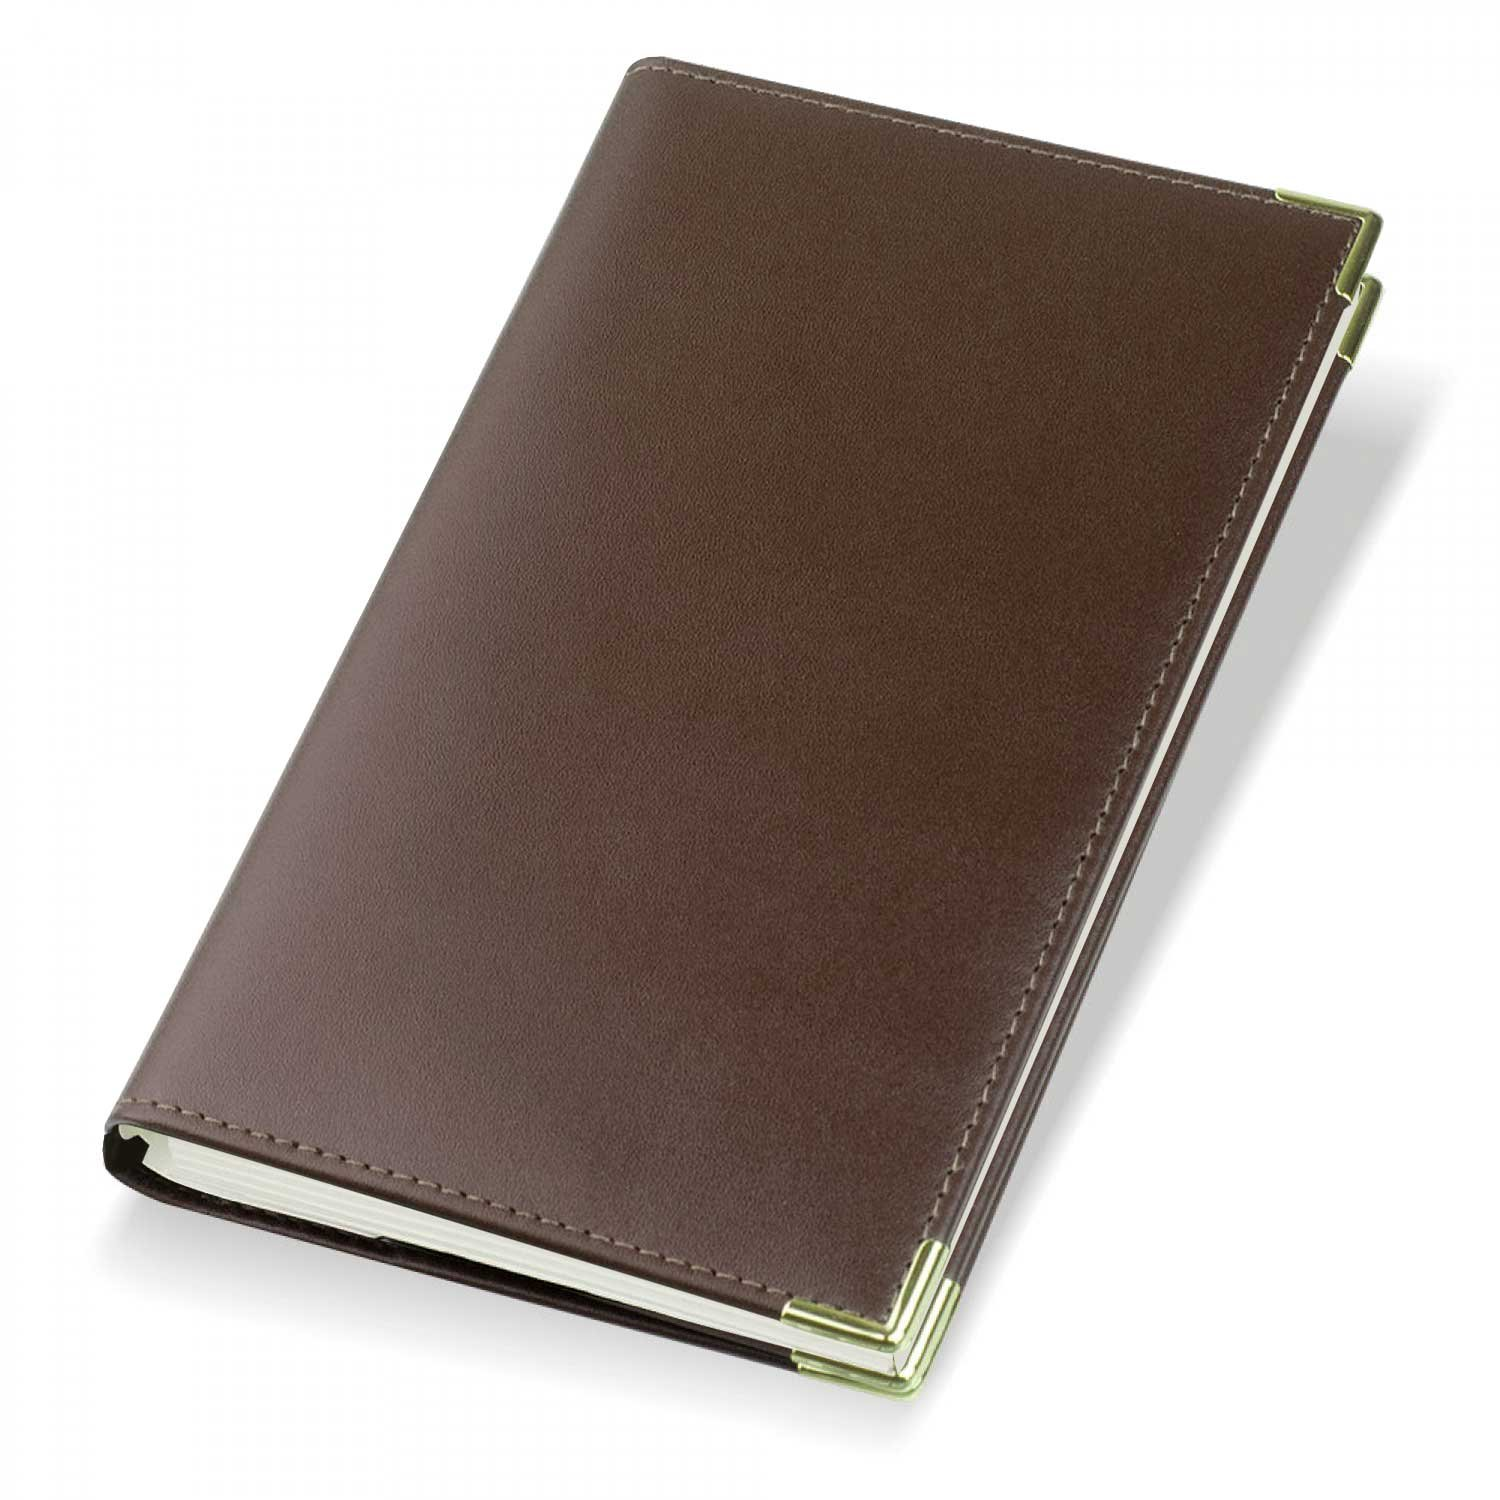 2019 Oxford Leather Diary Cover and Diary Insert - Brown - Refillable - 901 Gilt Edged Promotions